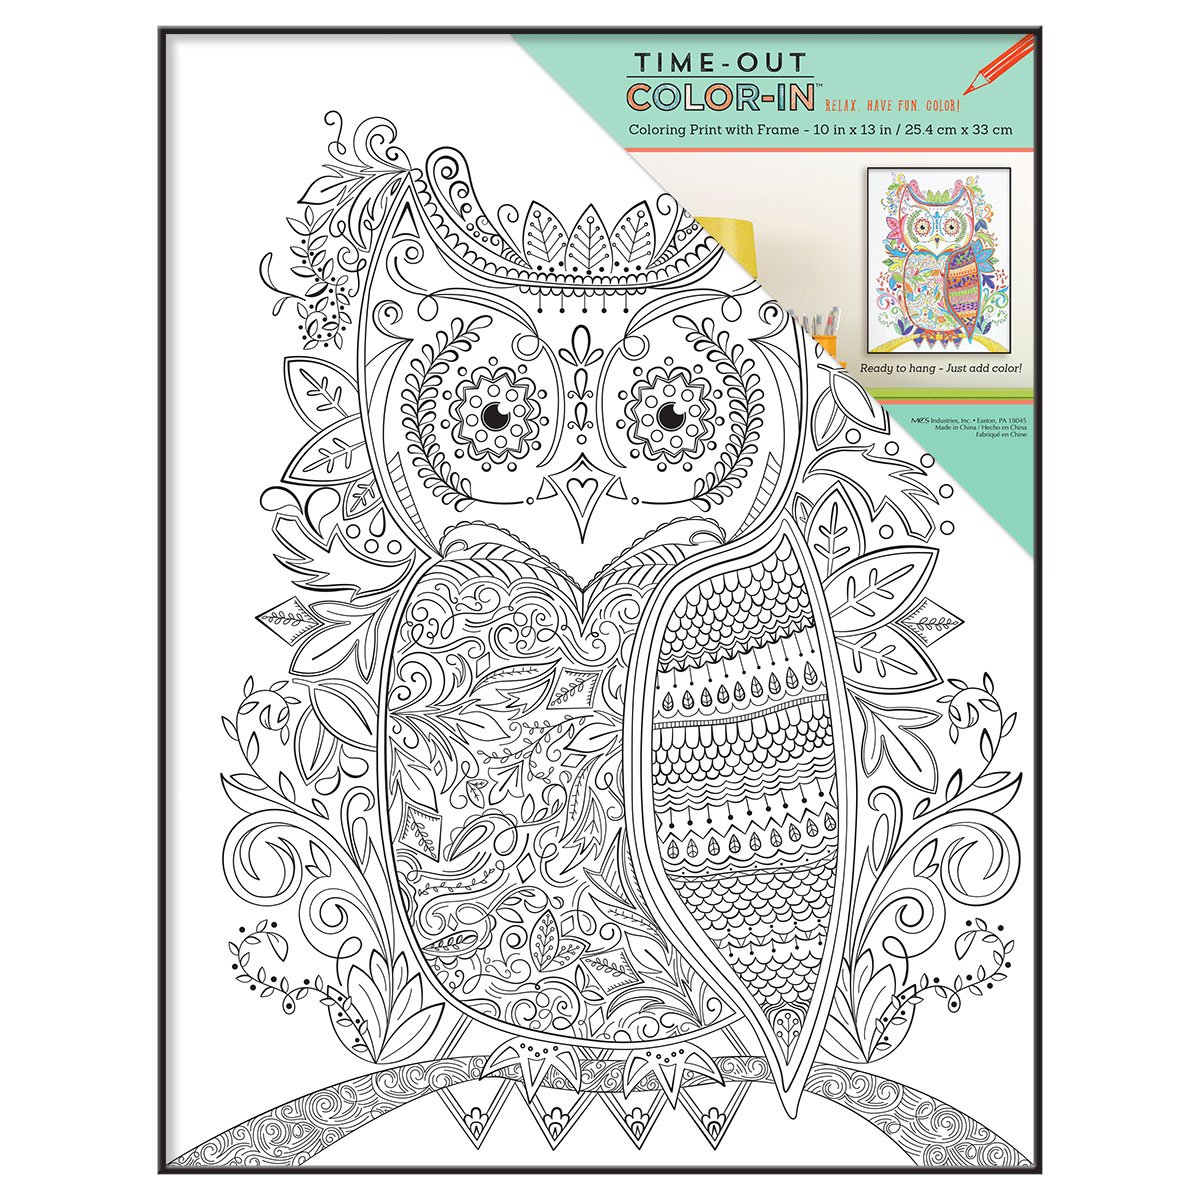 MCS Time-Out Color-In Framed Adult Coloring Page with Adventurer Sentiment, Includes Format Frame, 10 by 13-Inch MCS Industries 65632